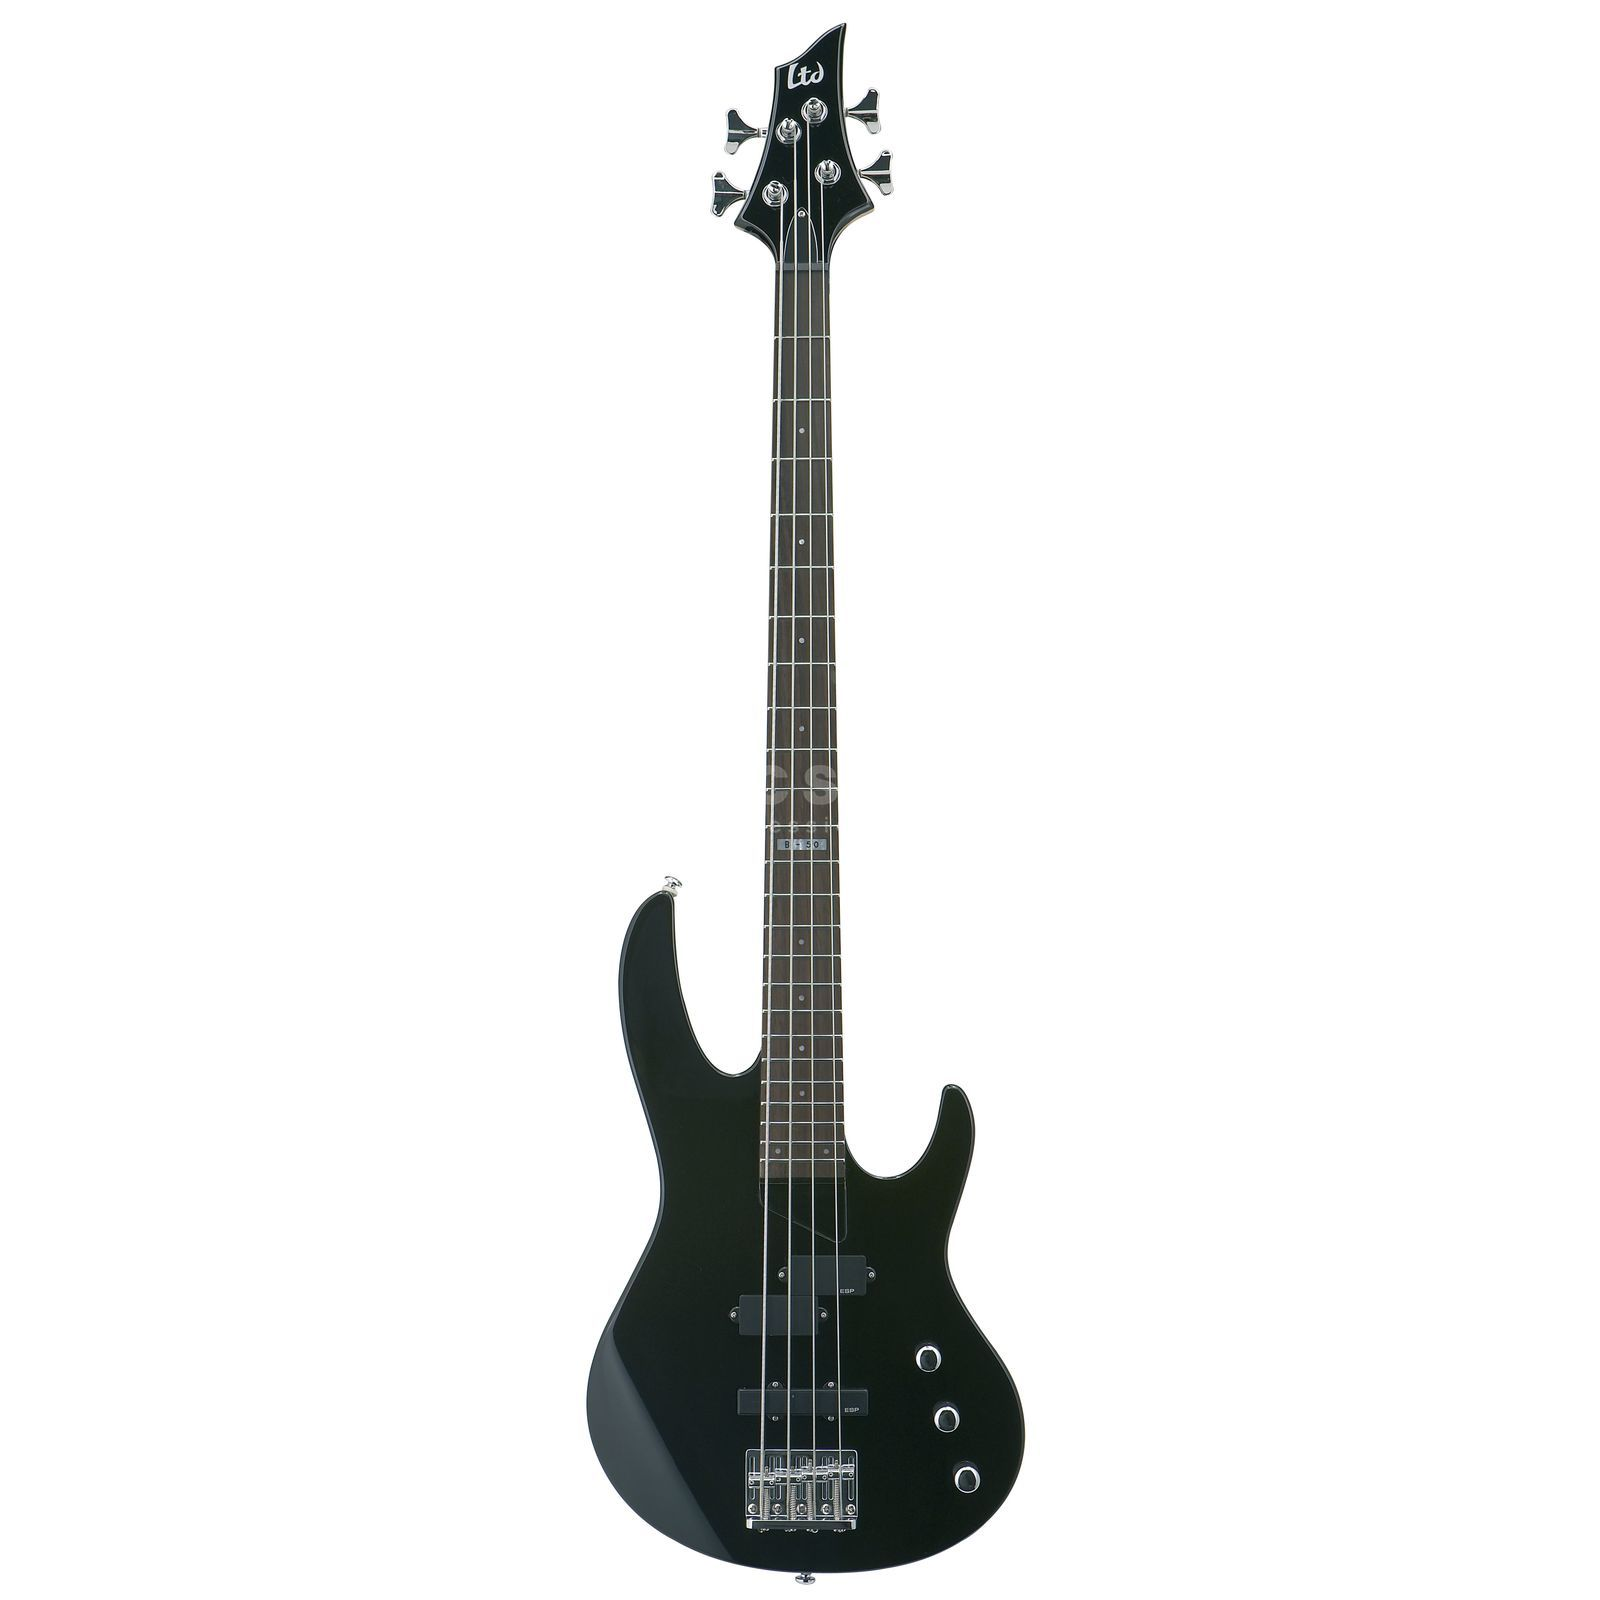 ESP LTD B-50 Bass Guitar, Black    Изображение товара